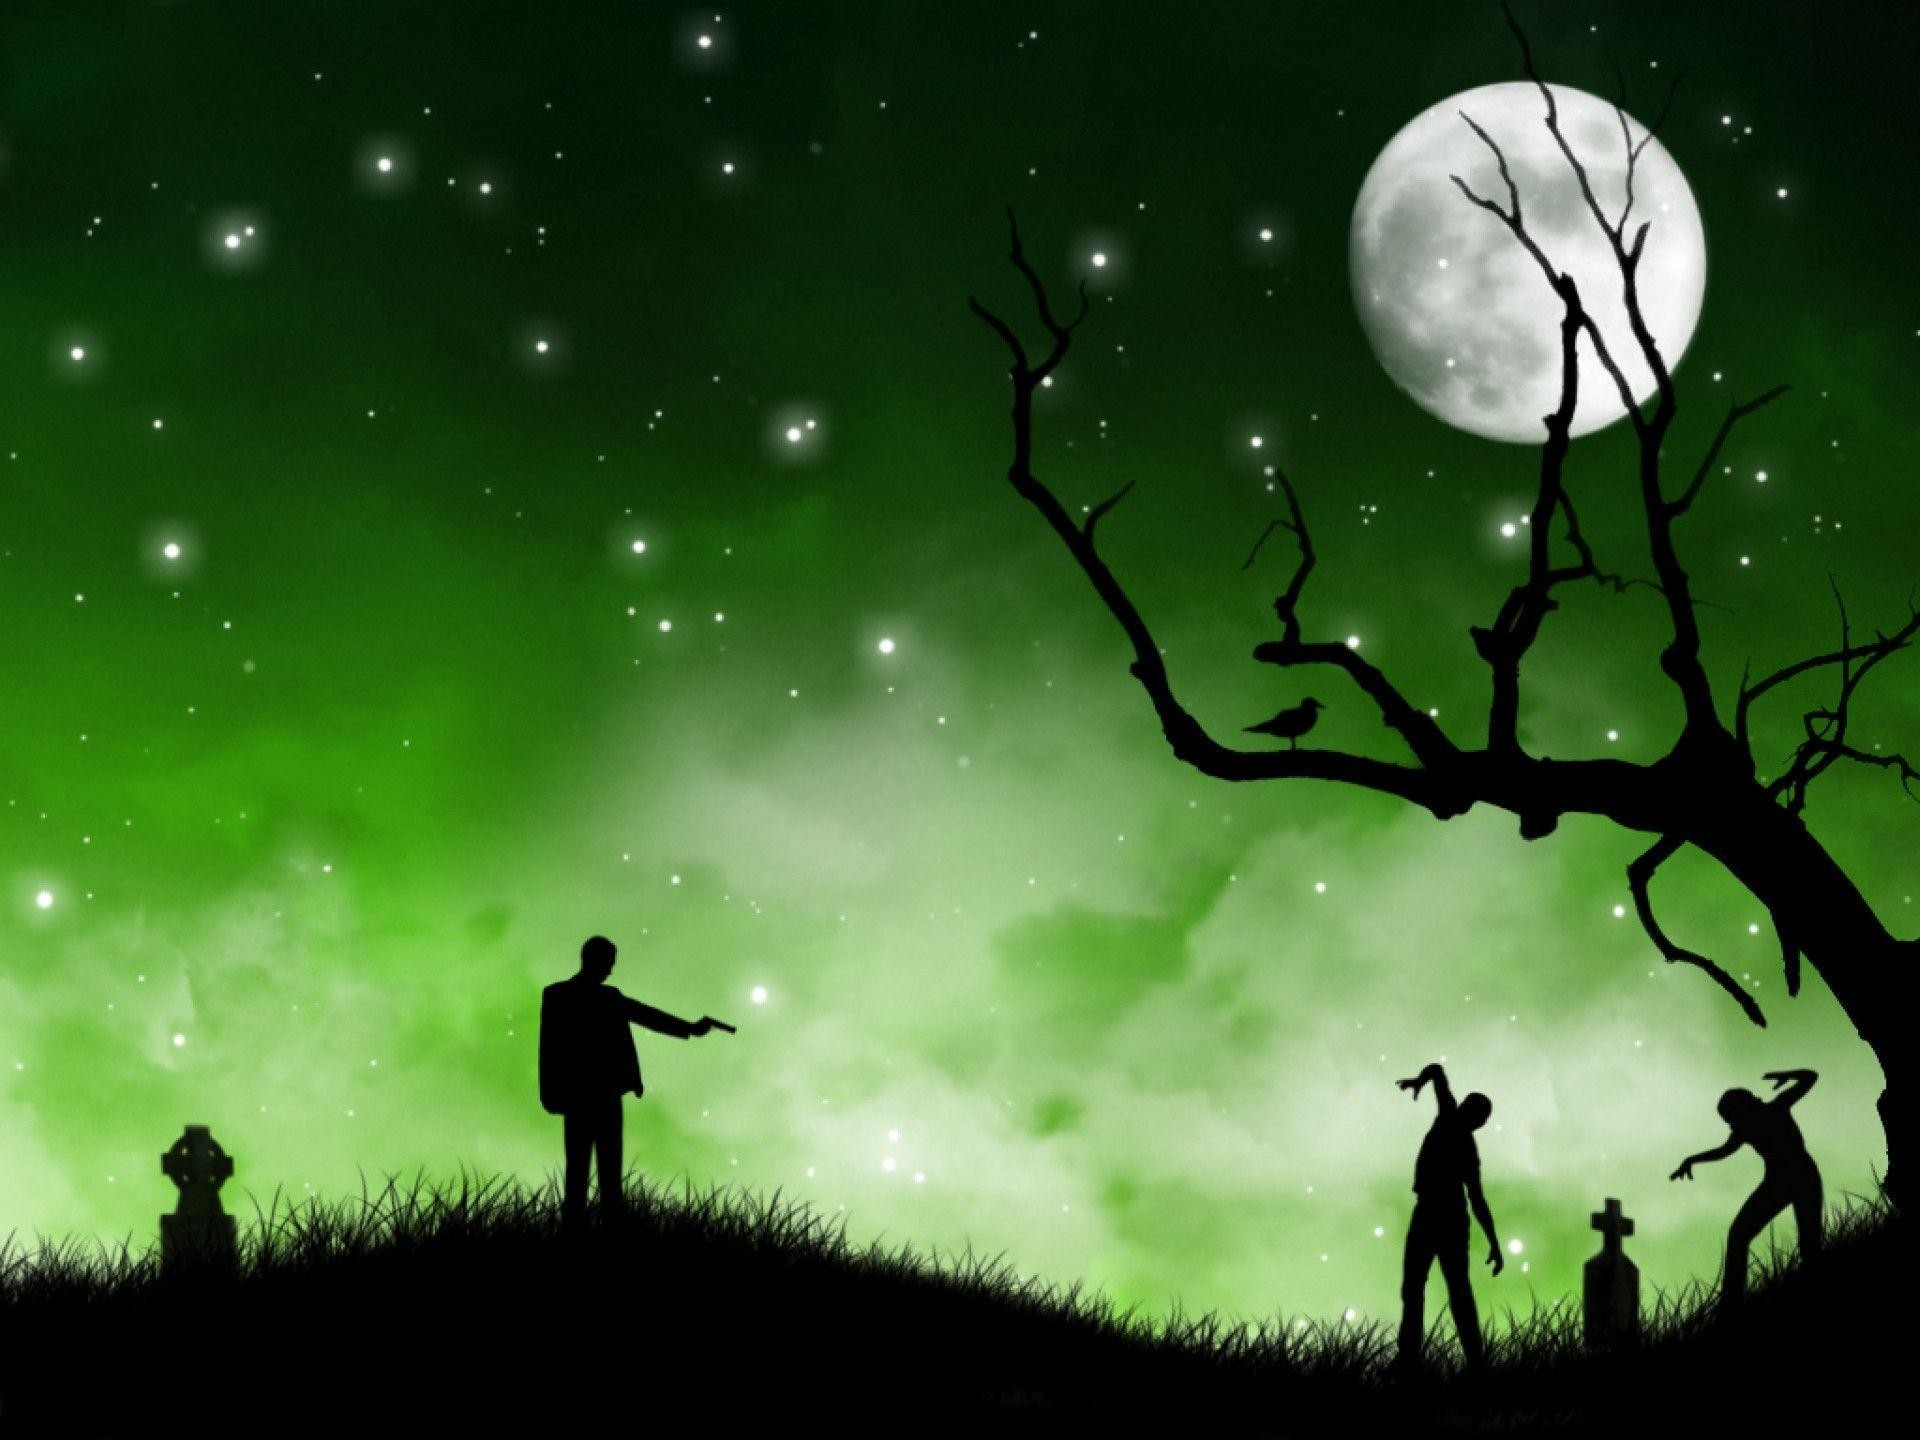 Download free zombie wallpapers x large resolution pic mch035643 download voltagebd Images